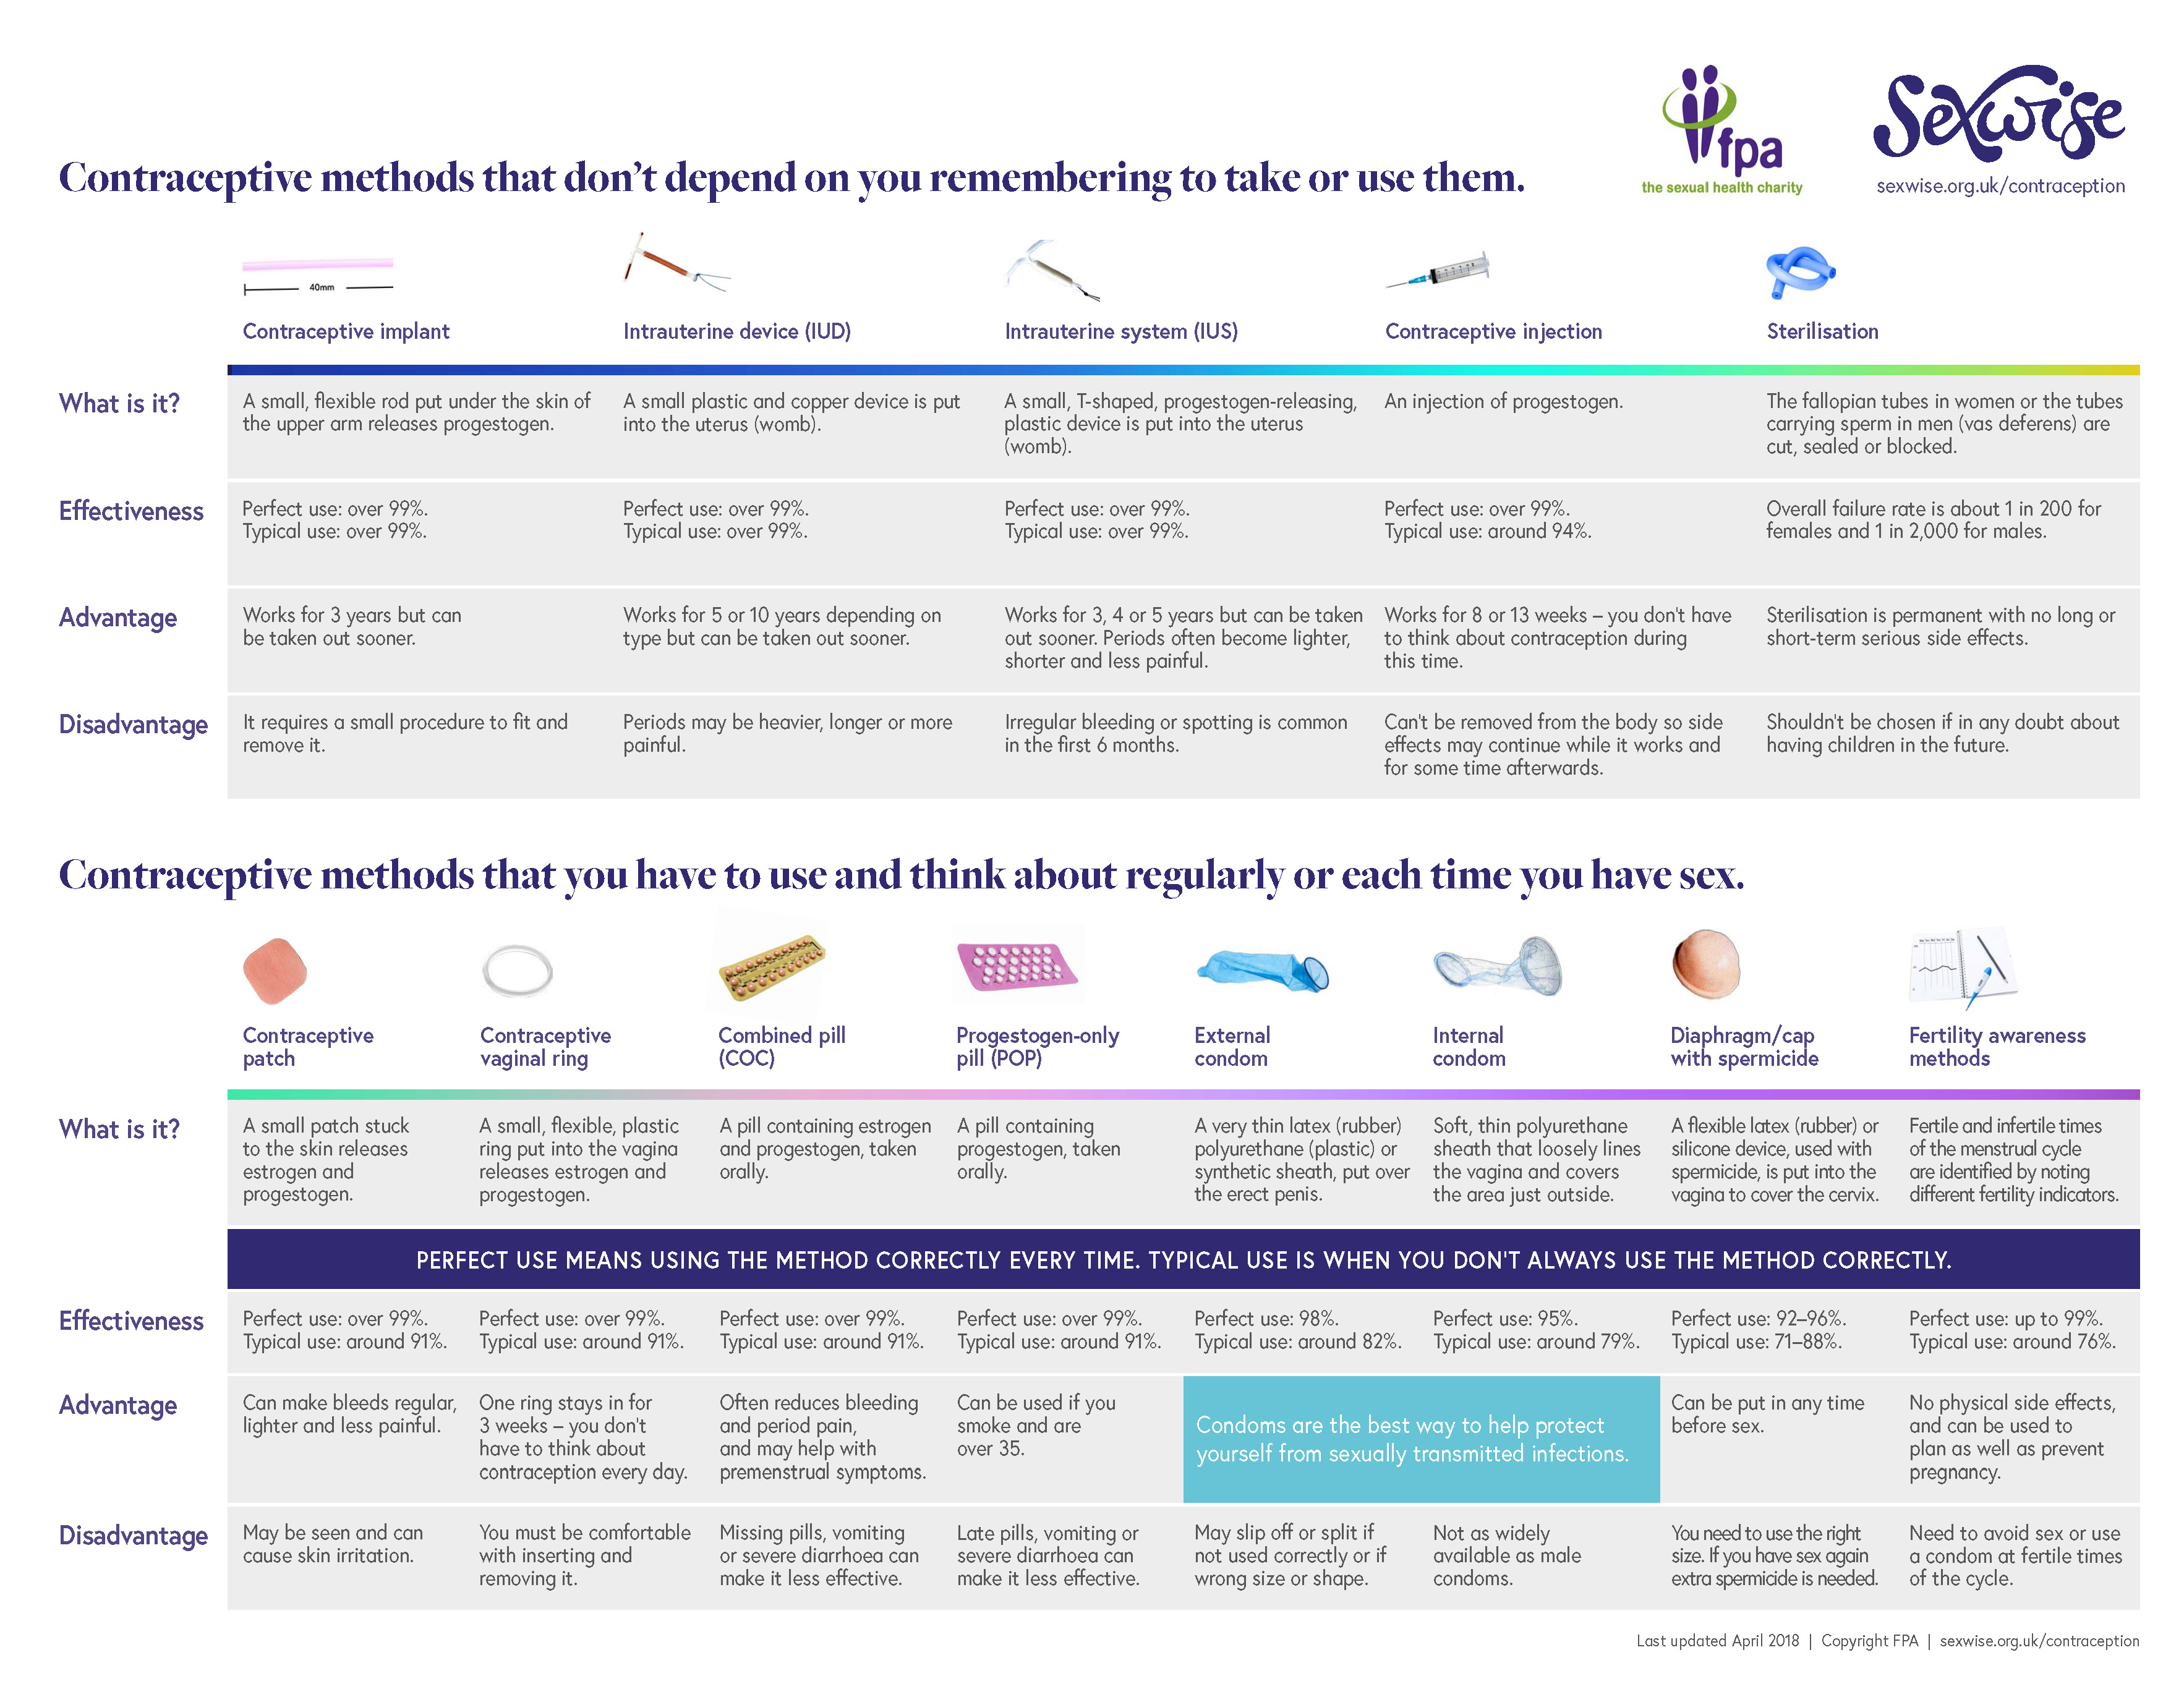 Contraception at a Glance chart